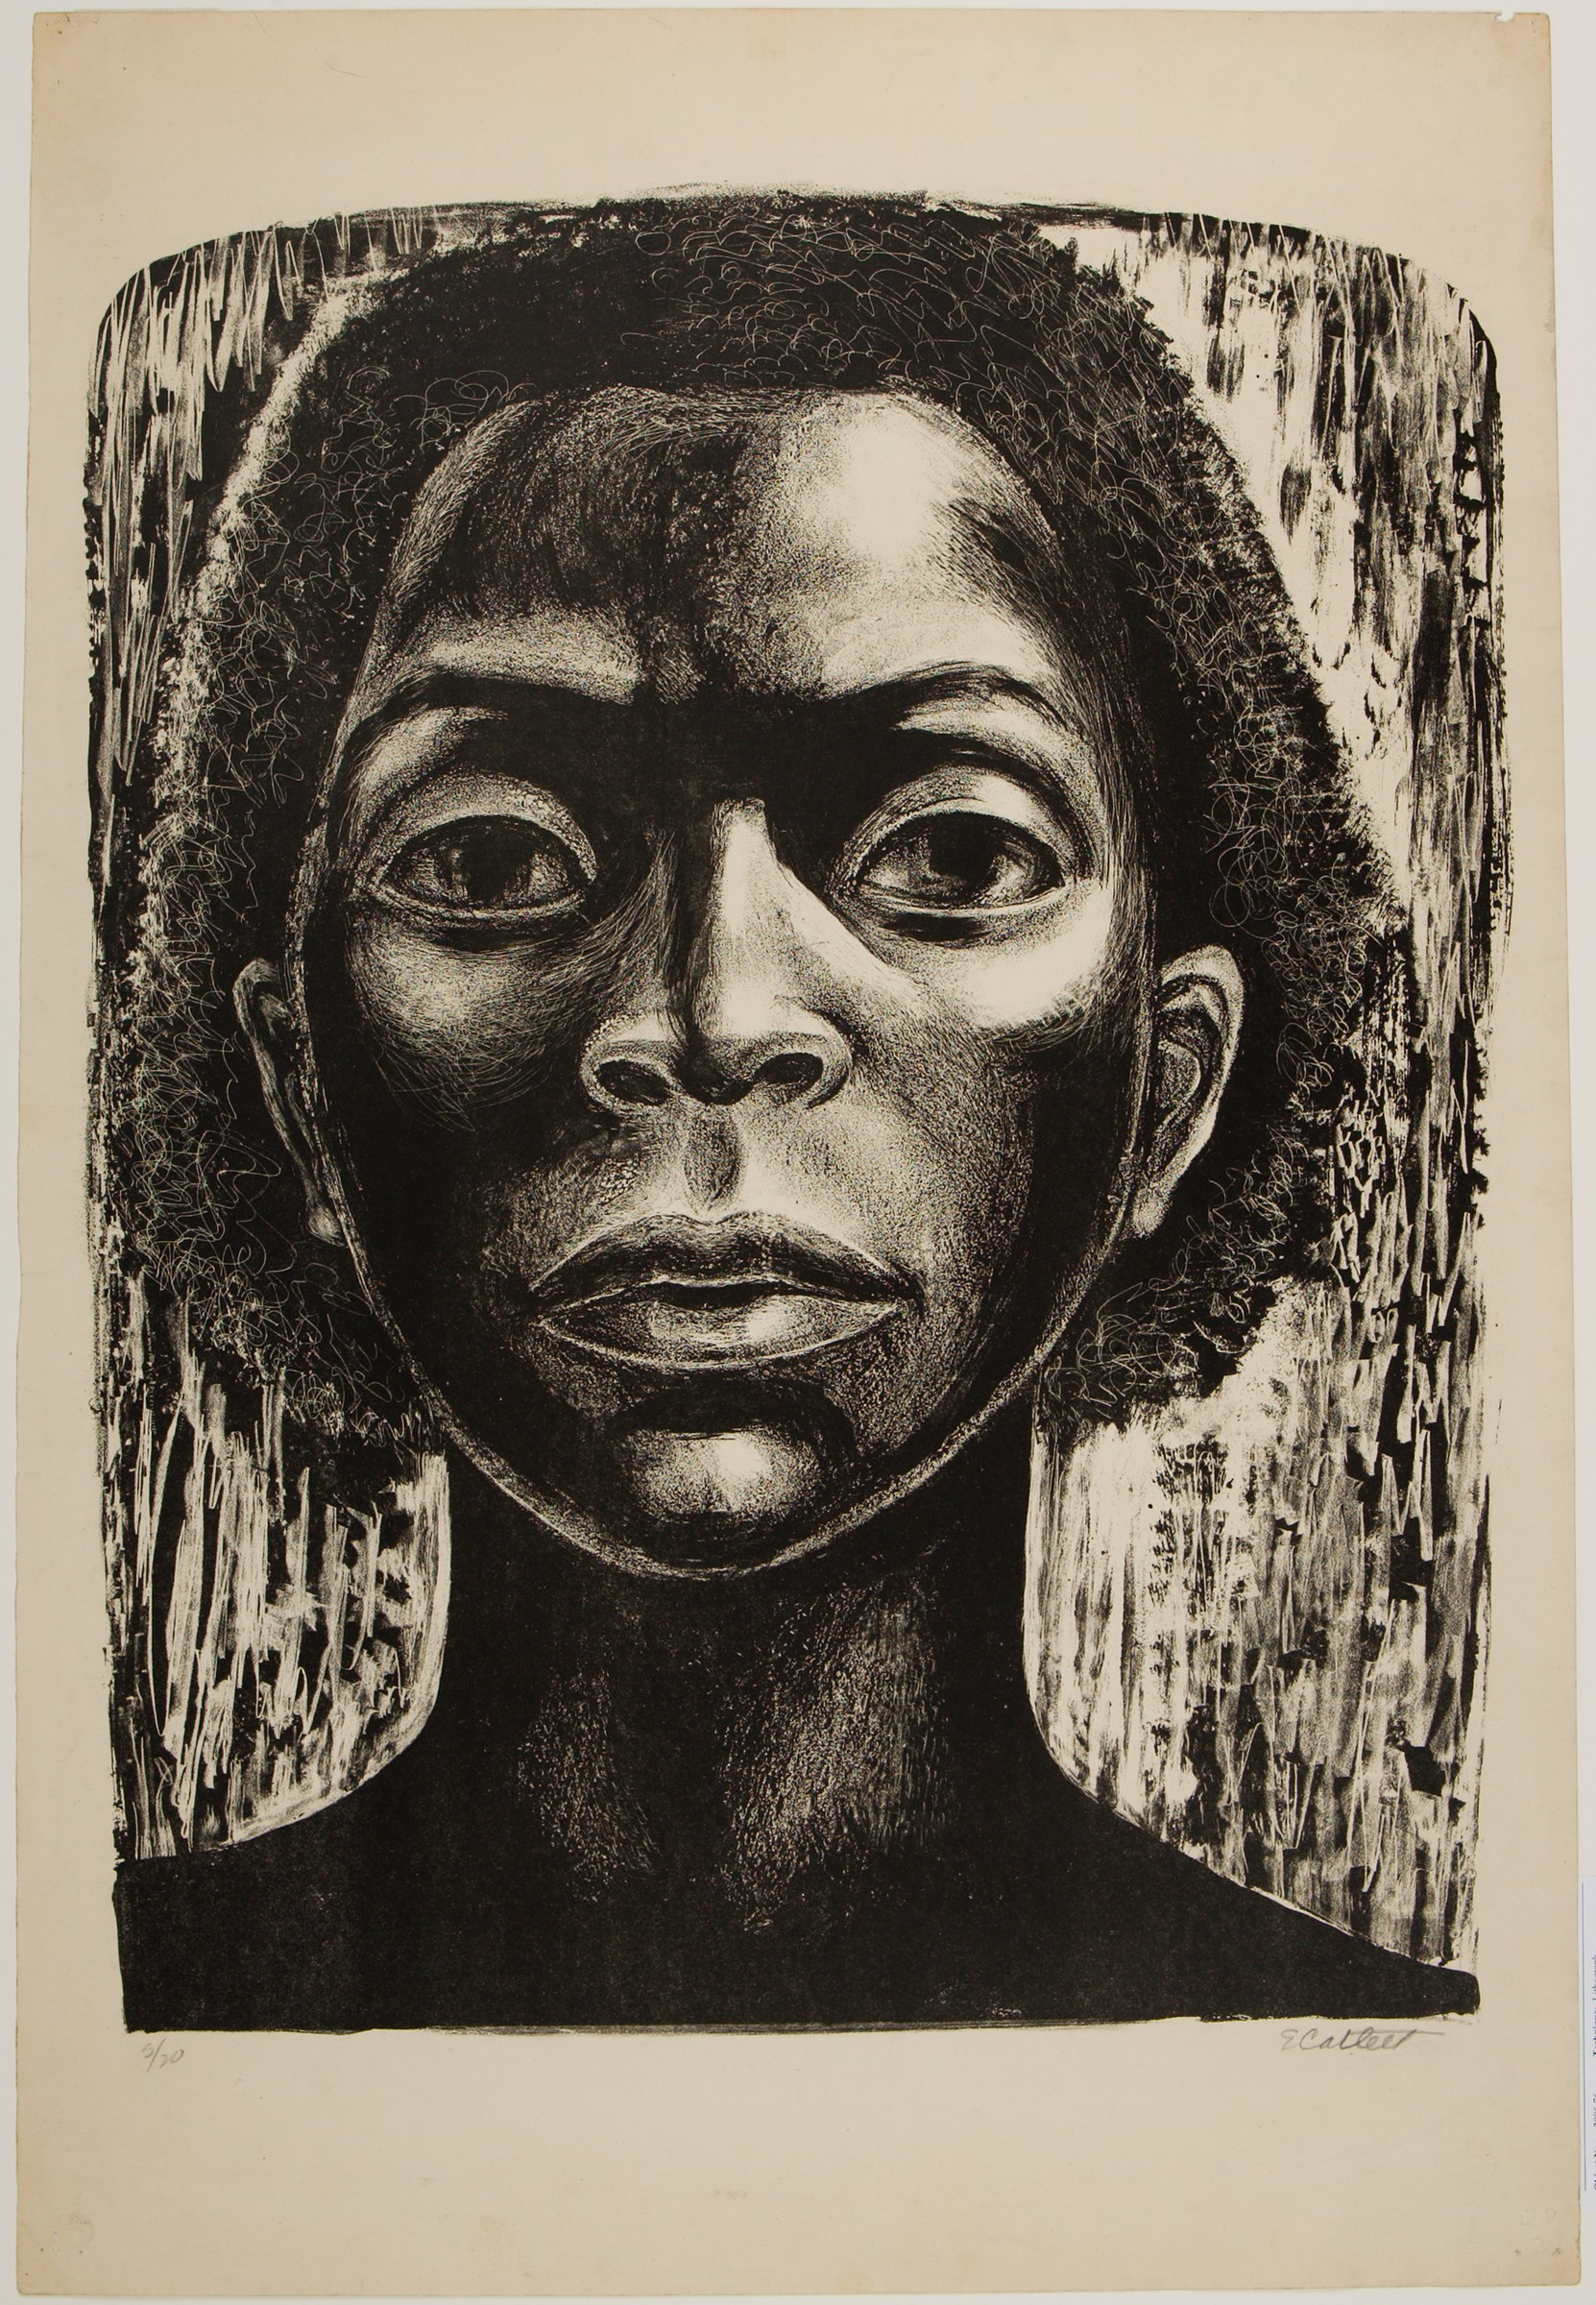 Thislithograph in black ink on cream paper presents a vertically aligned portrait of a young Black woman, showing her face framed by chin-length hair, her neck, and her upper shoulders. Her eyes are wide open. The face appears illuminated by bright light from above.